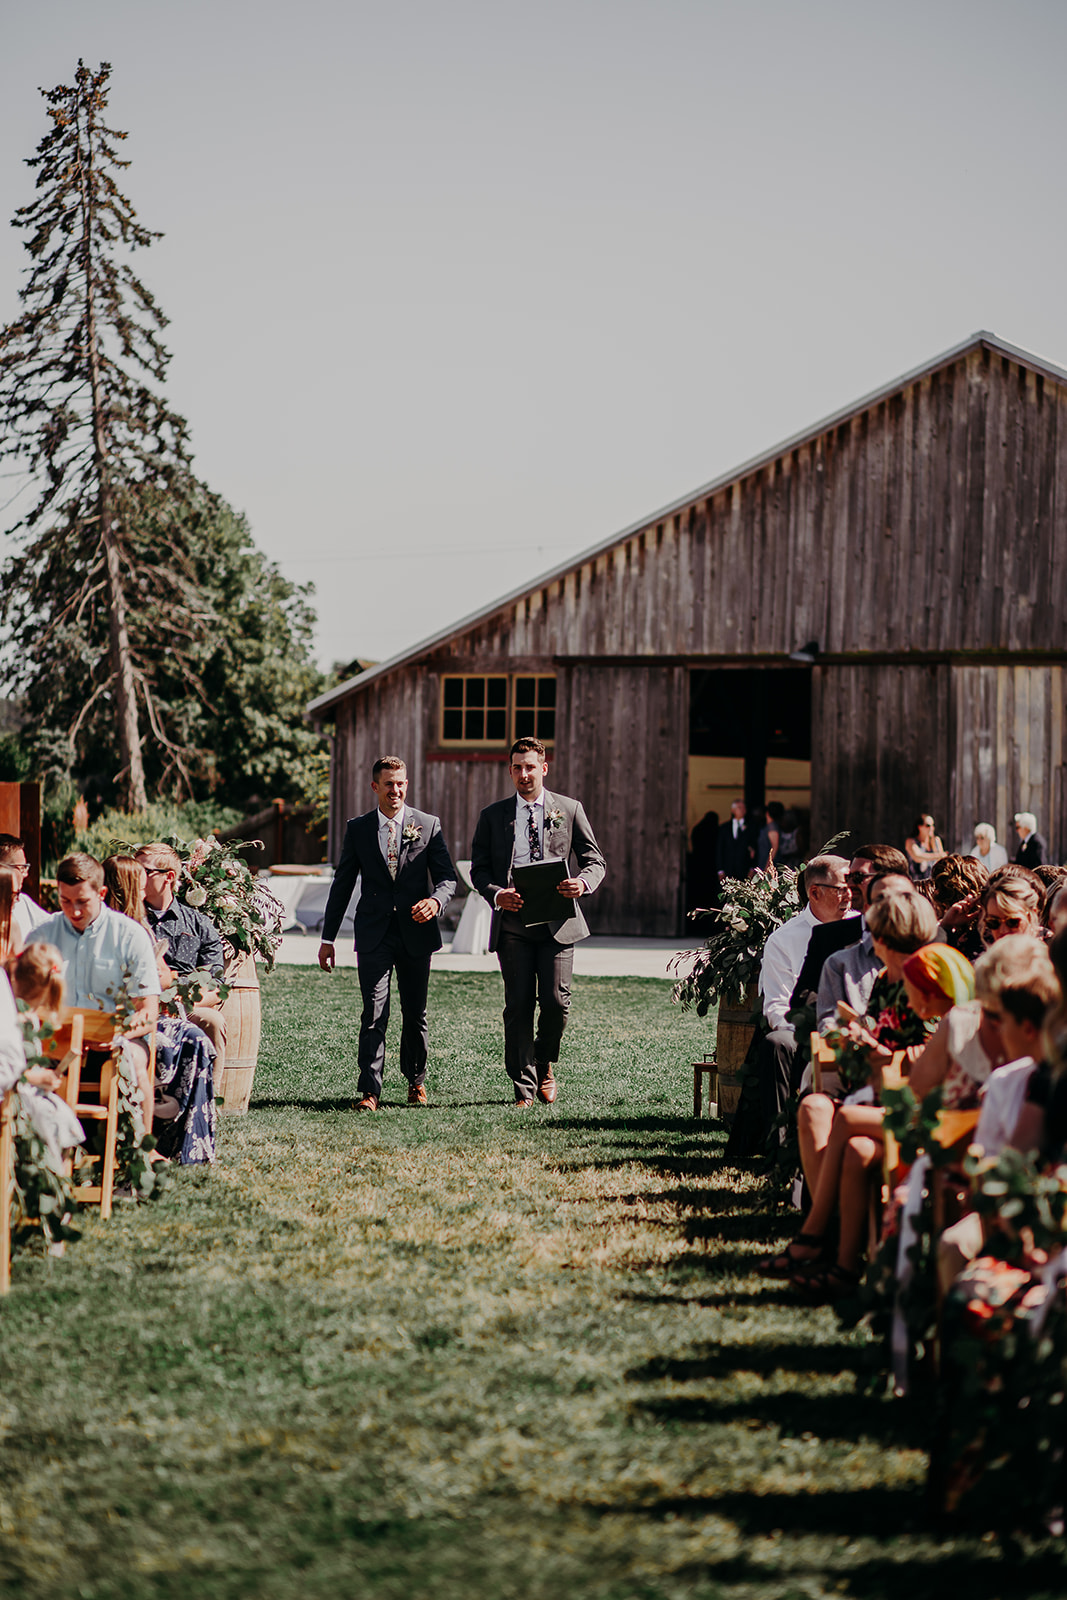 mount-vernon-wedding-salt-box-barn-amanda-riley-megan-gallagher-photography-1_(7_of_351).jpg